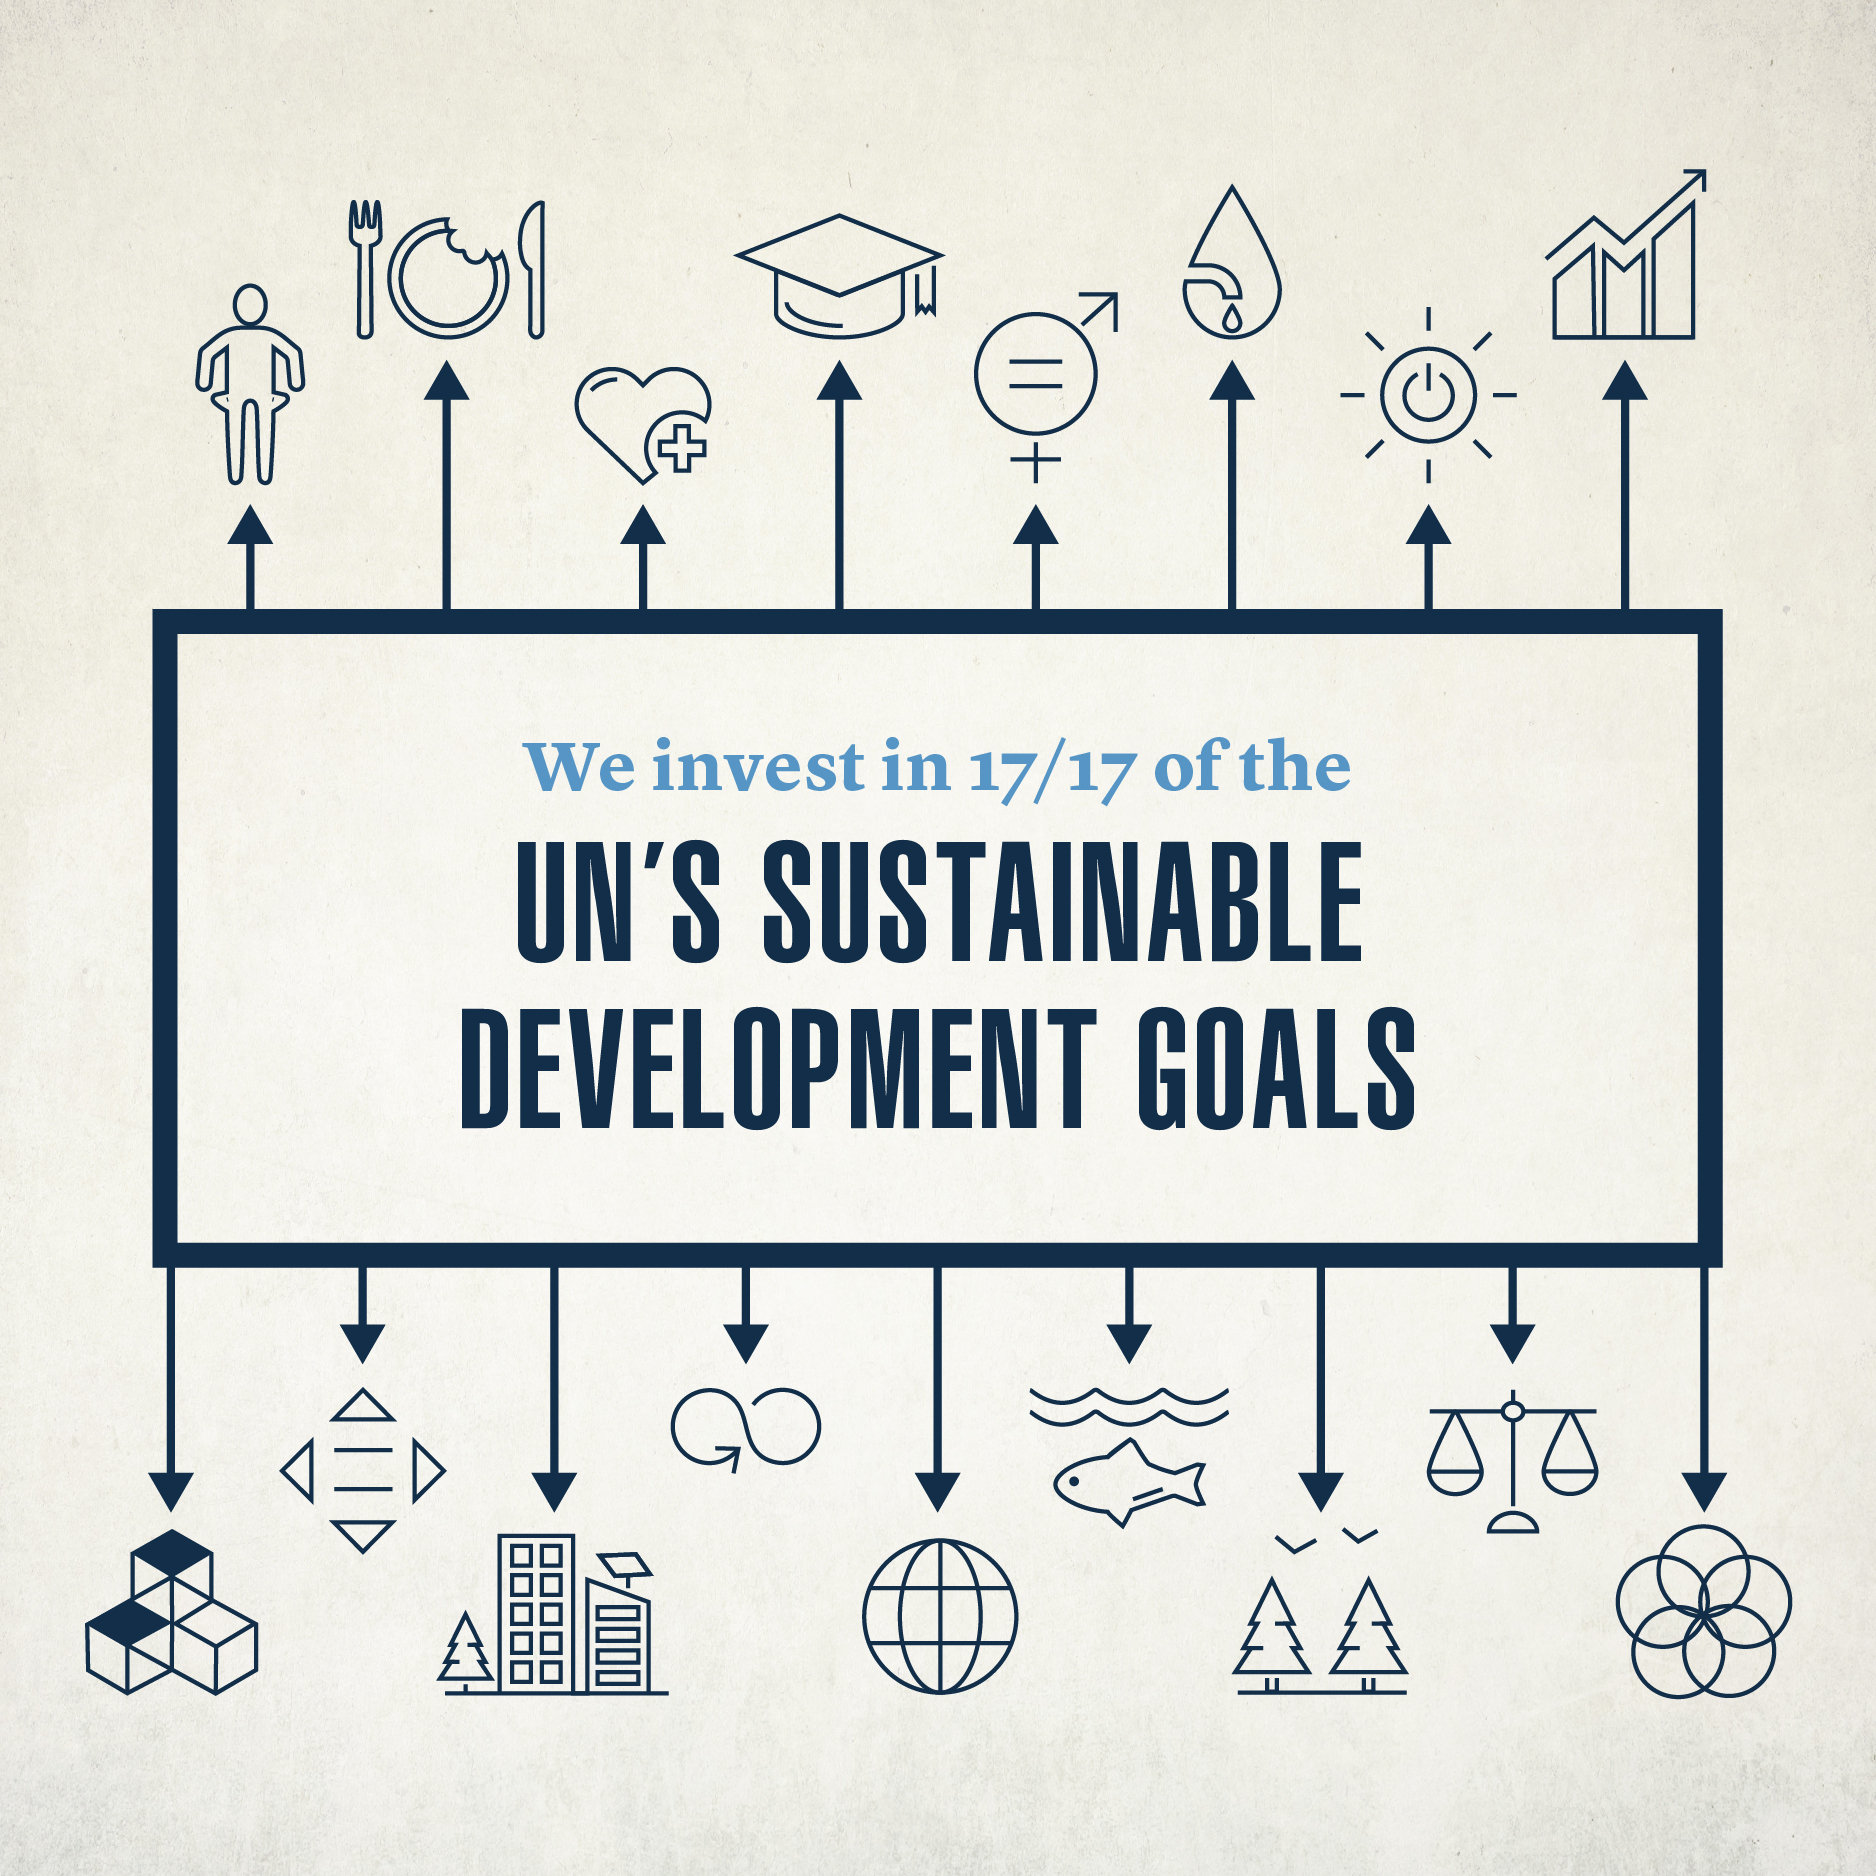 We invest in 17/17 of the UN Sustainable development goals.